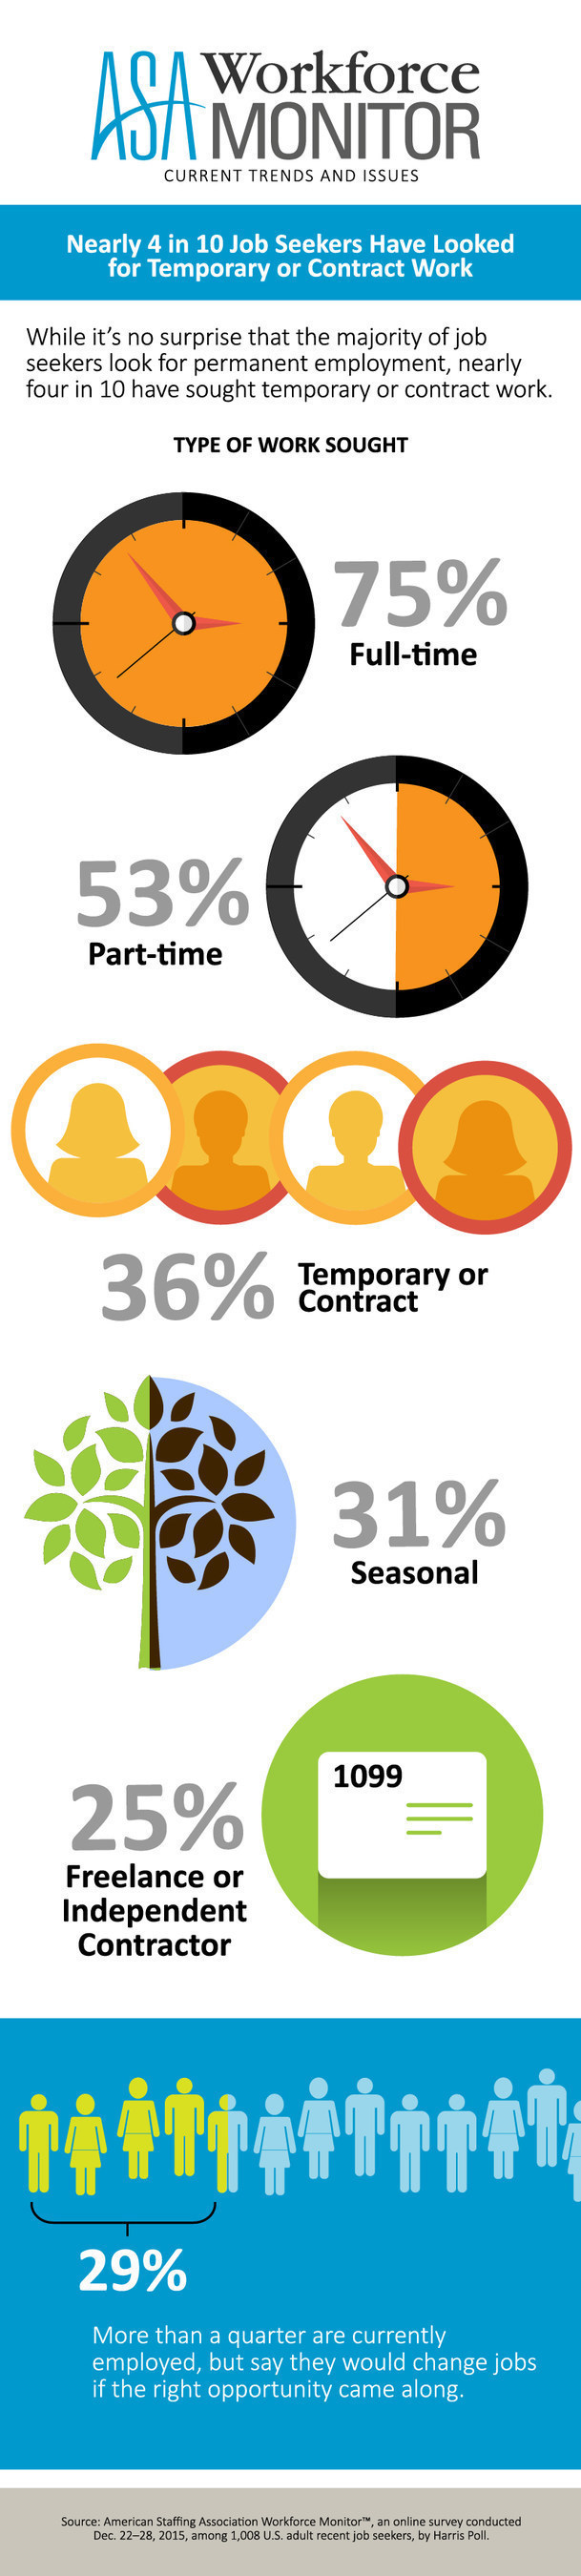 American Staffing Association Workforce Monitor: Nearly Four in 10 Job Seekers Have Looked for Temporary or Contract Work